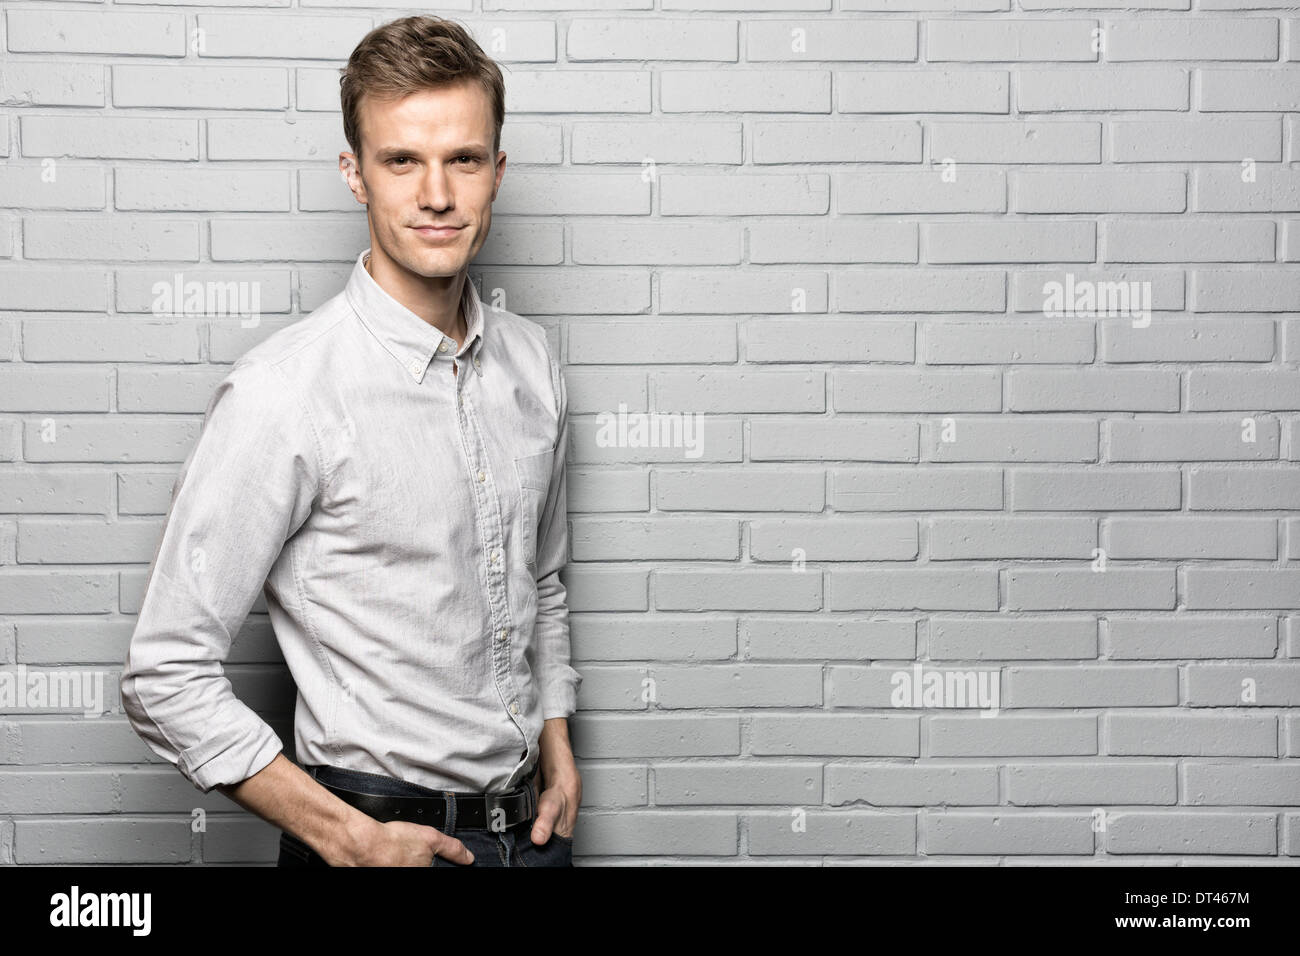 Male casual portrait smiling studio brick looking camera - Stock Image